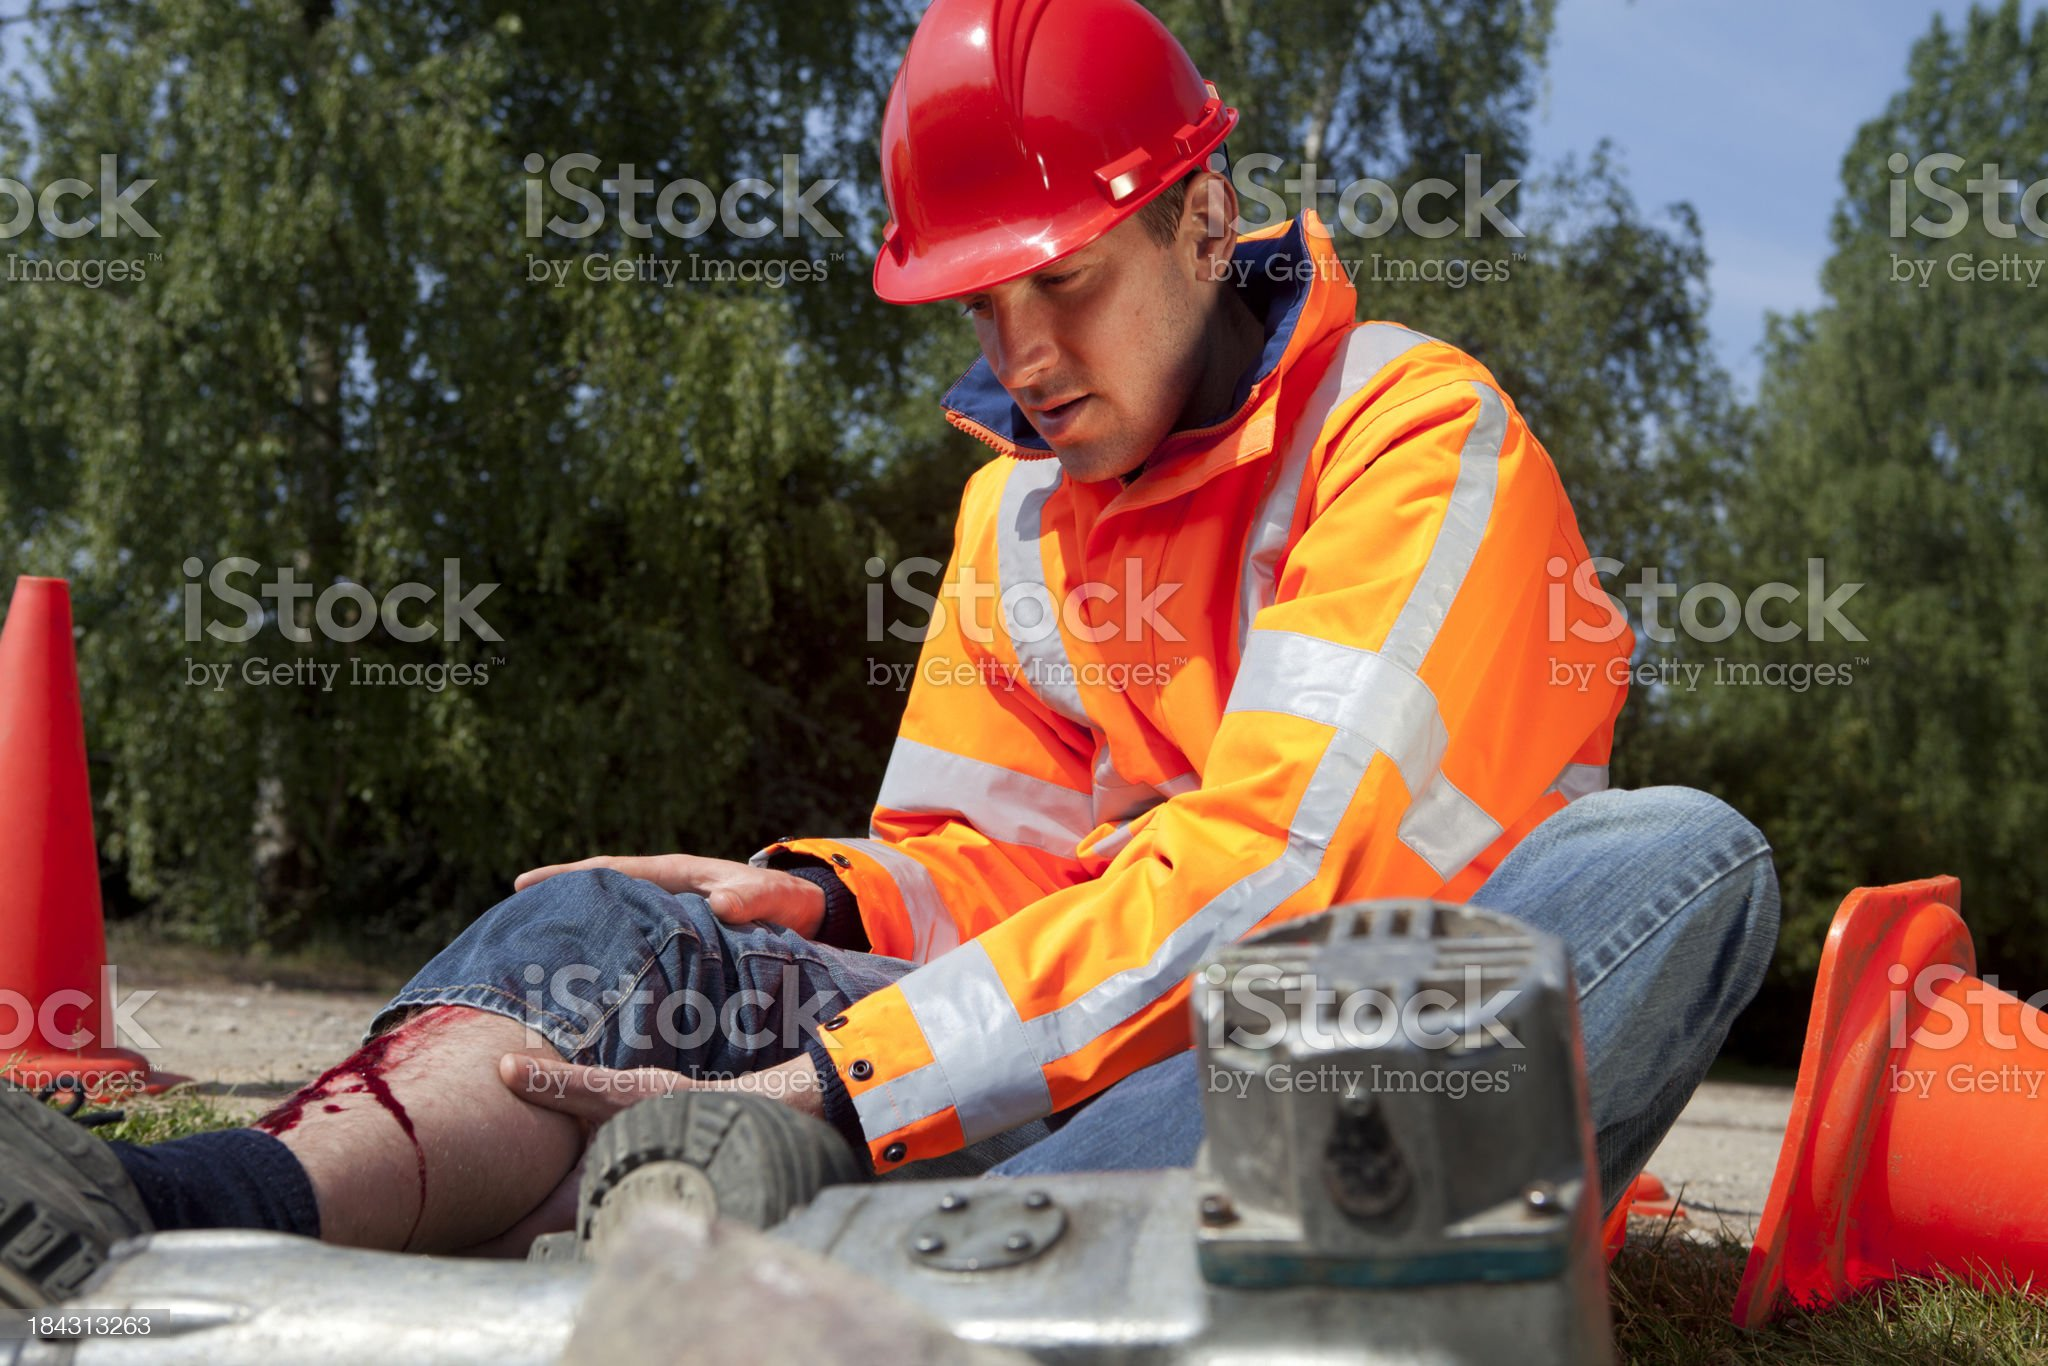 Construction worker falling on the job. Accidents can happen. royalty-free stock photo